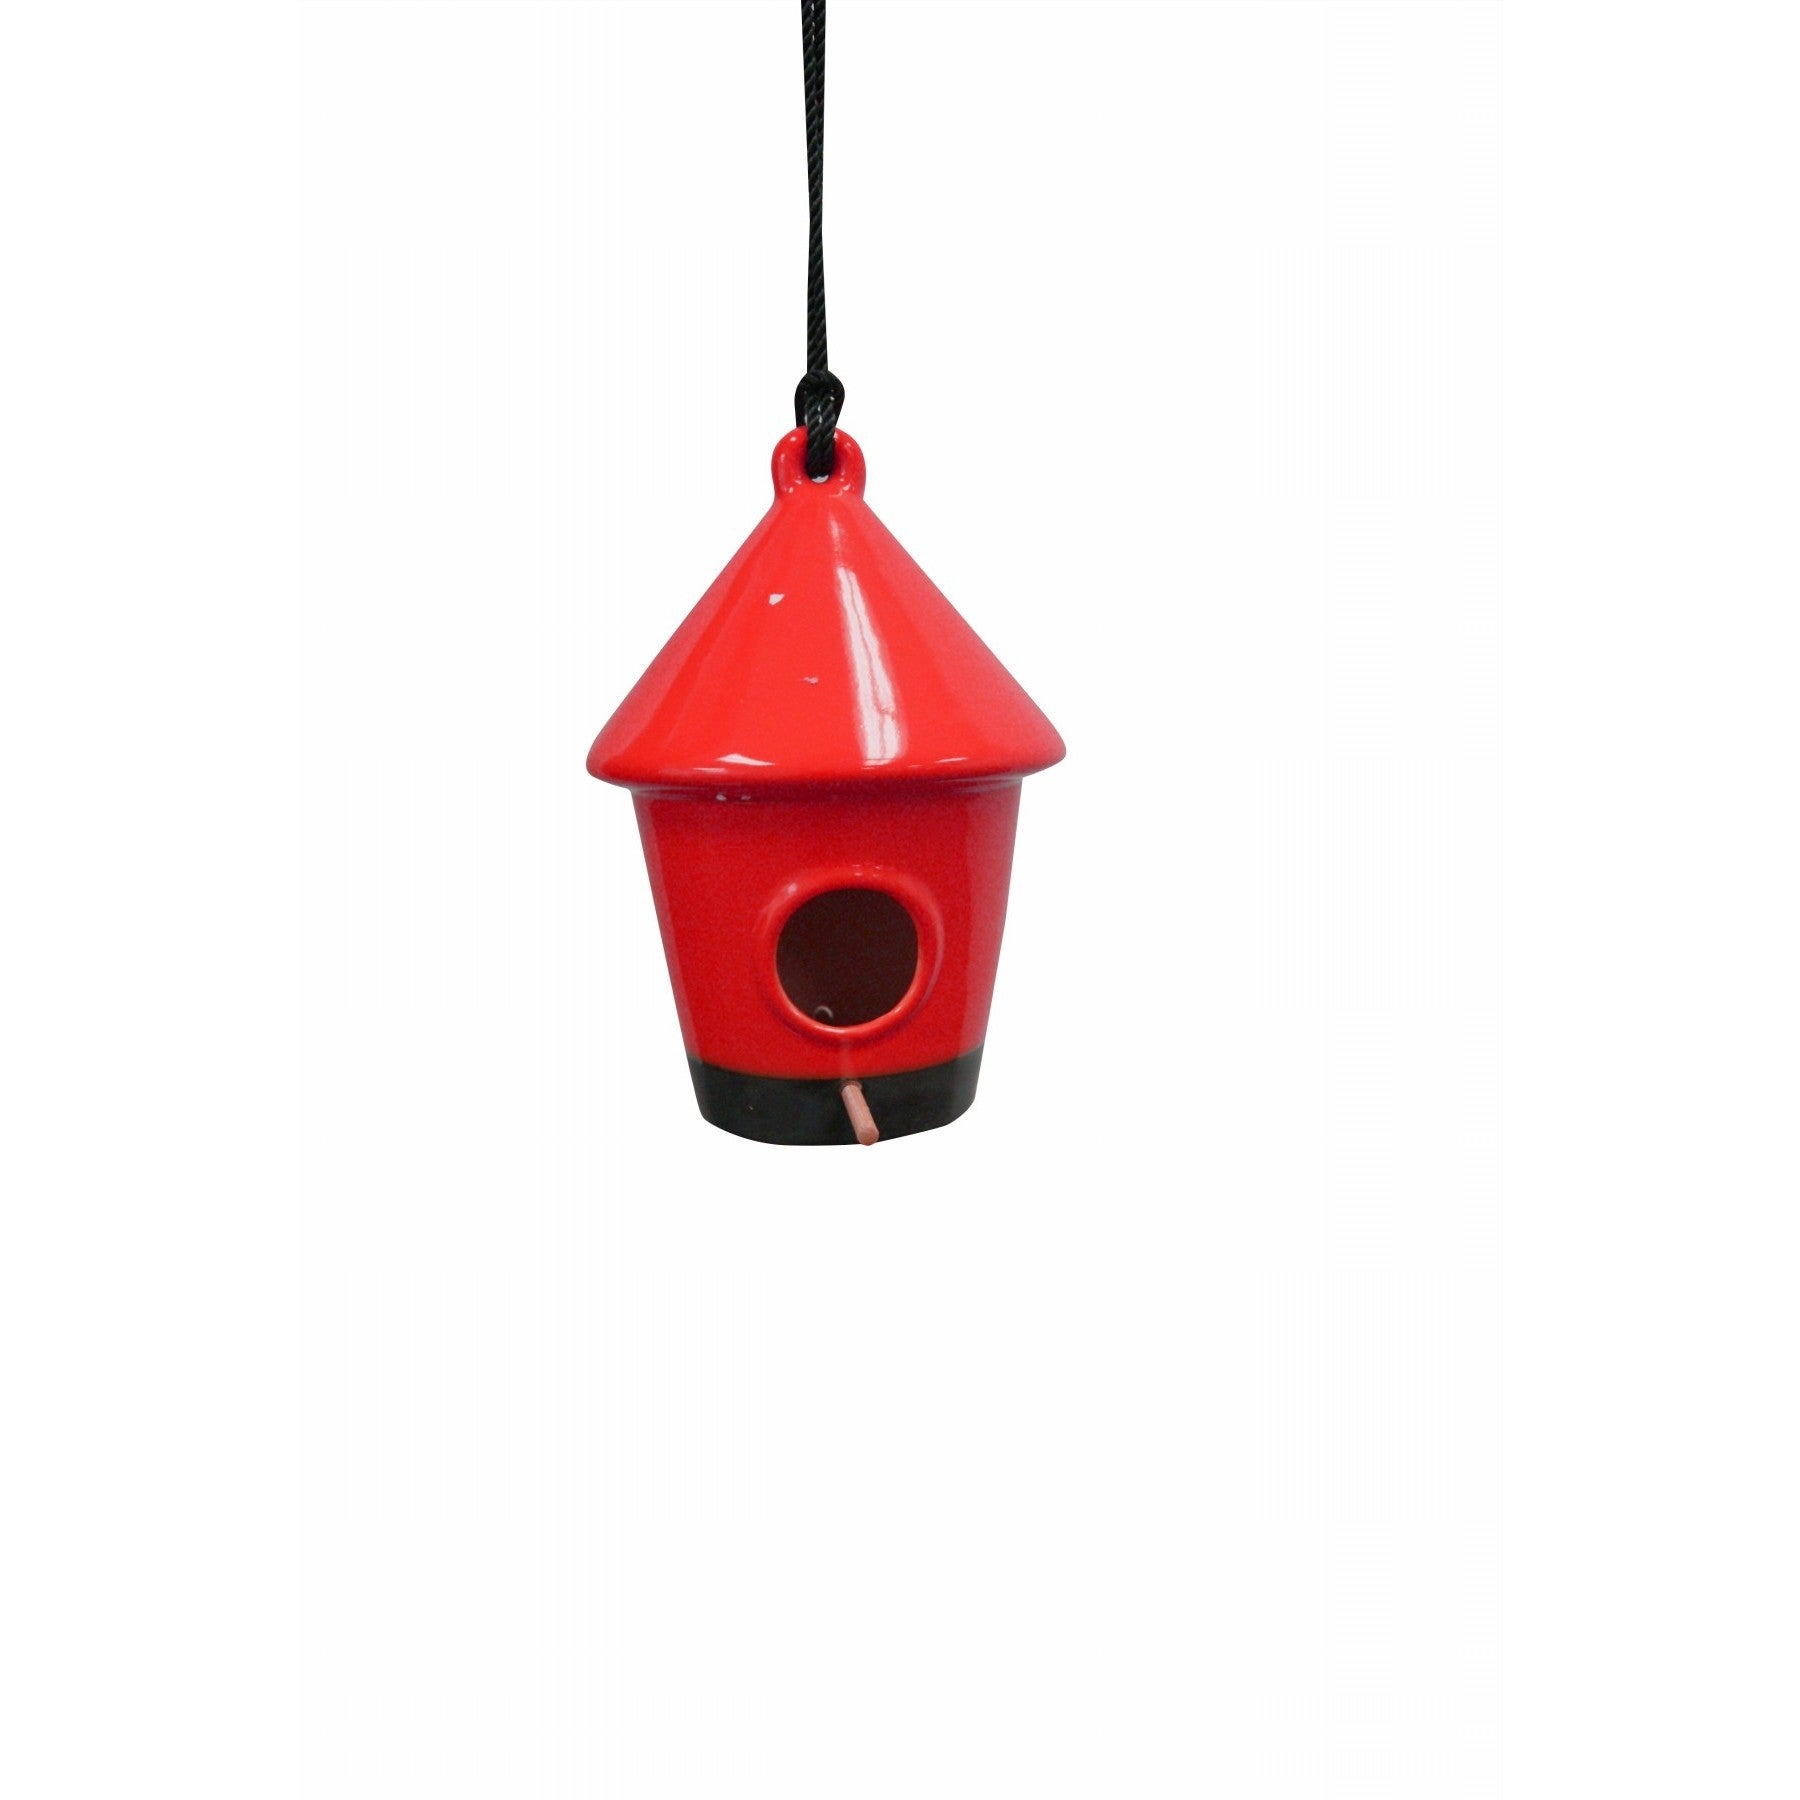 Alpine 10-inch Hanging Red Birdhouse (Red) (Ceramic), Out...